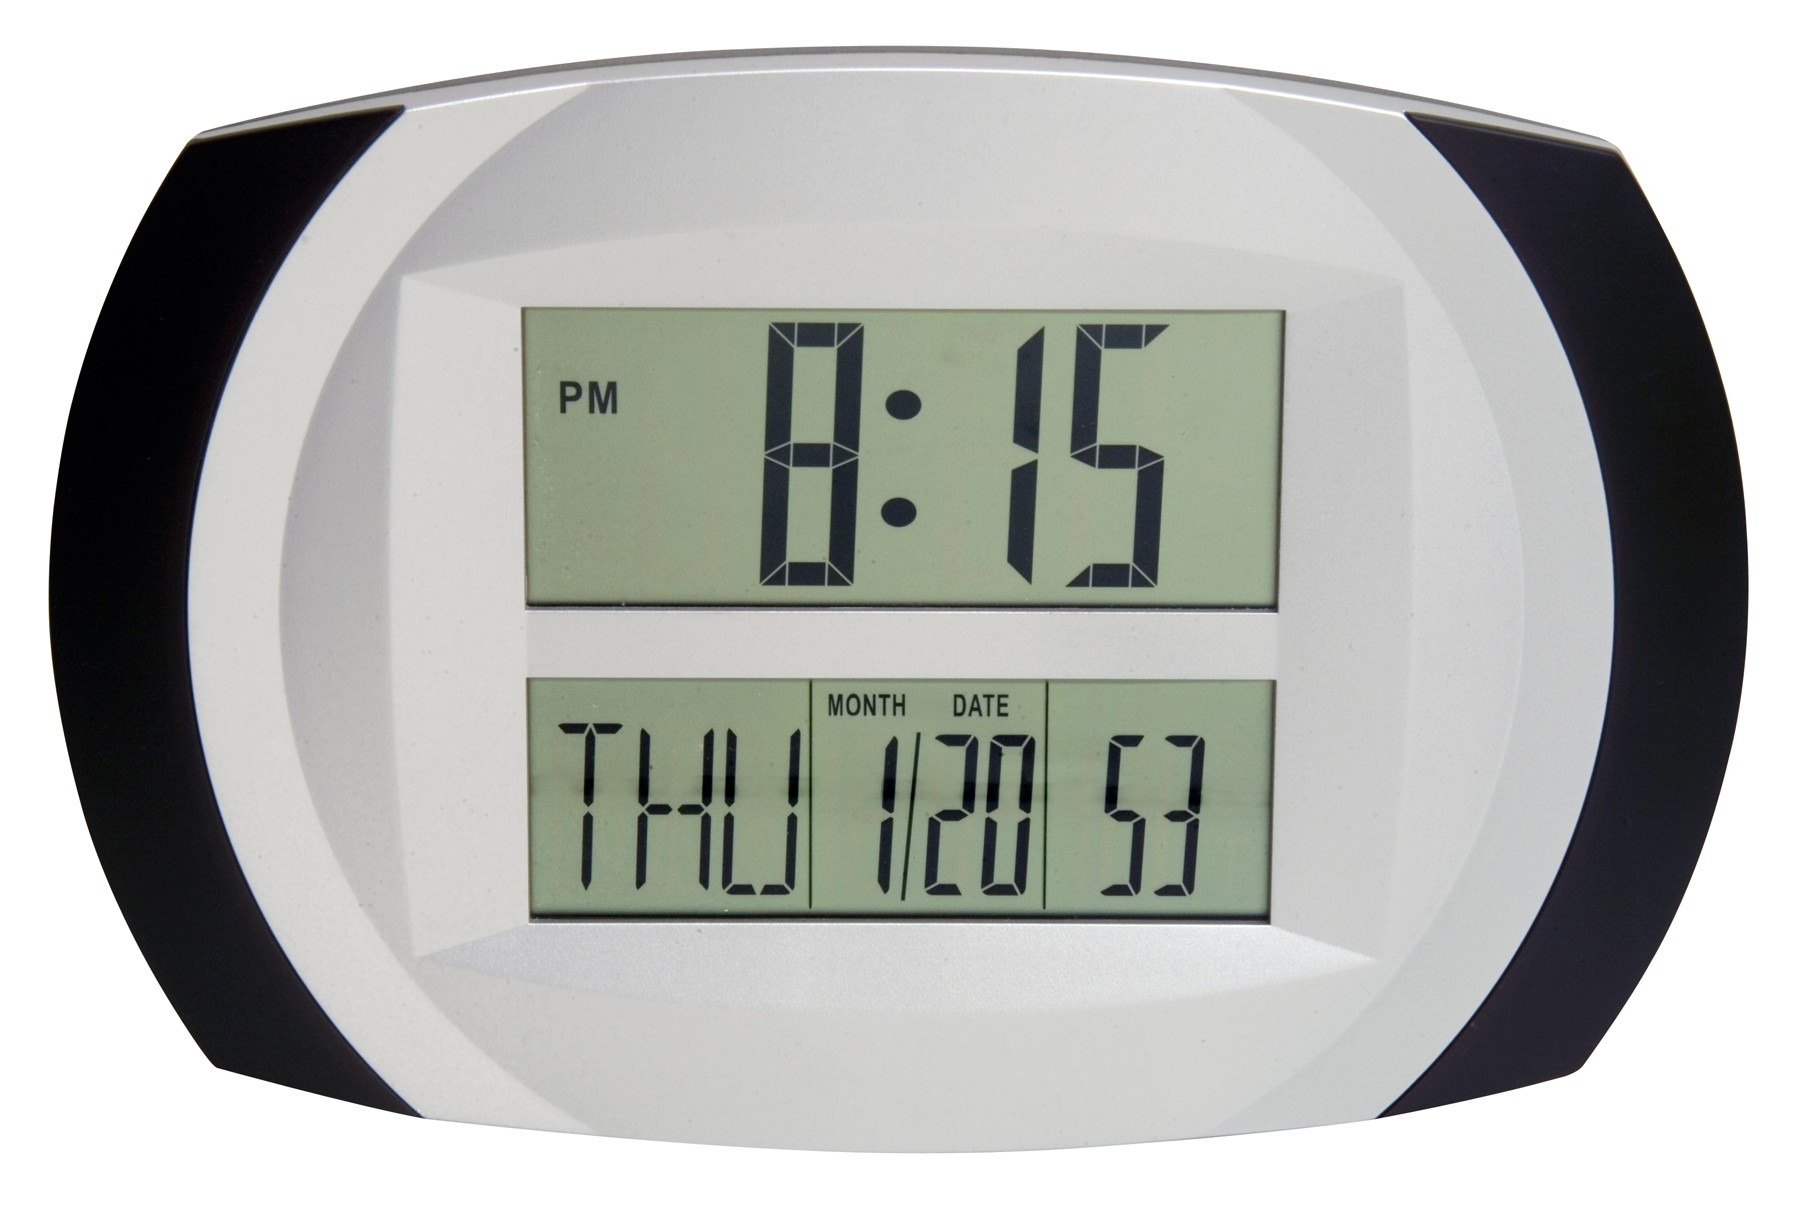 SP Bel-Art, H-B DURAC Multi-Function Digital Clock with Calendar, 0 to 50C Thermometer and Alarm